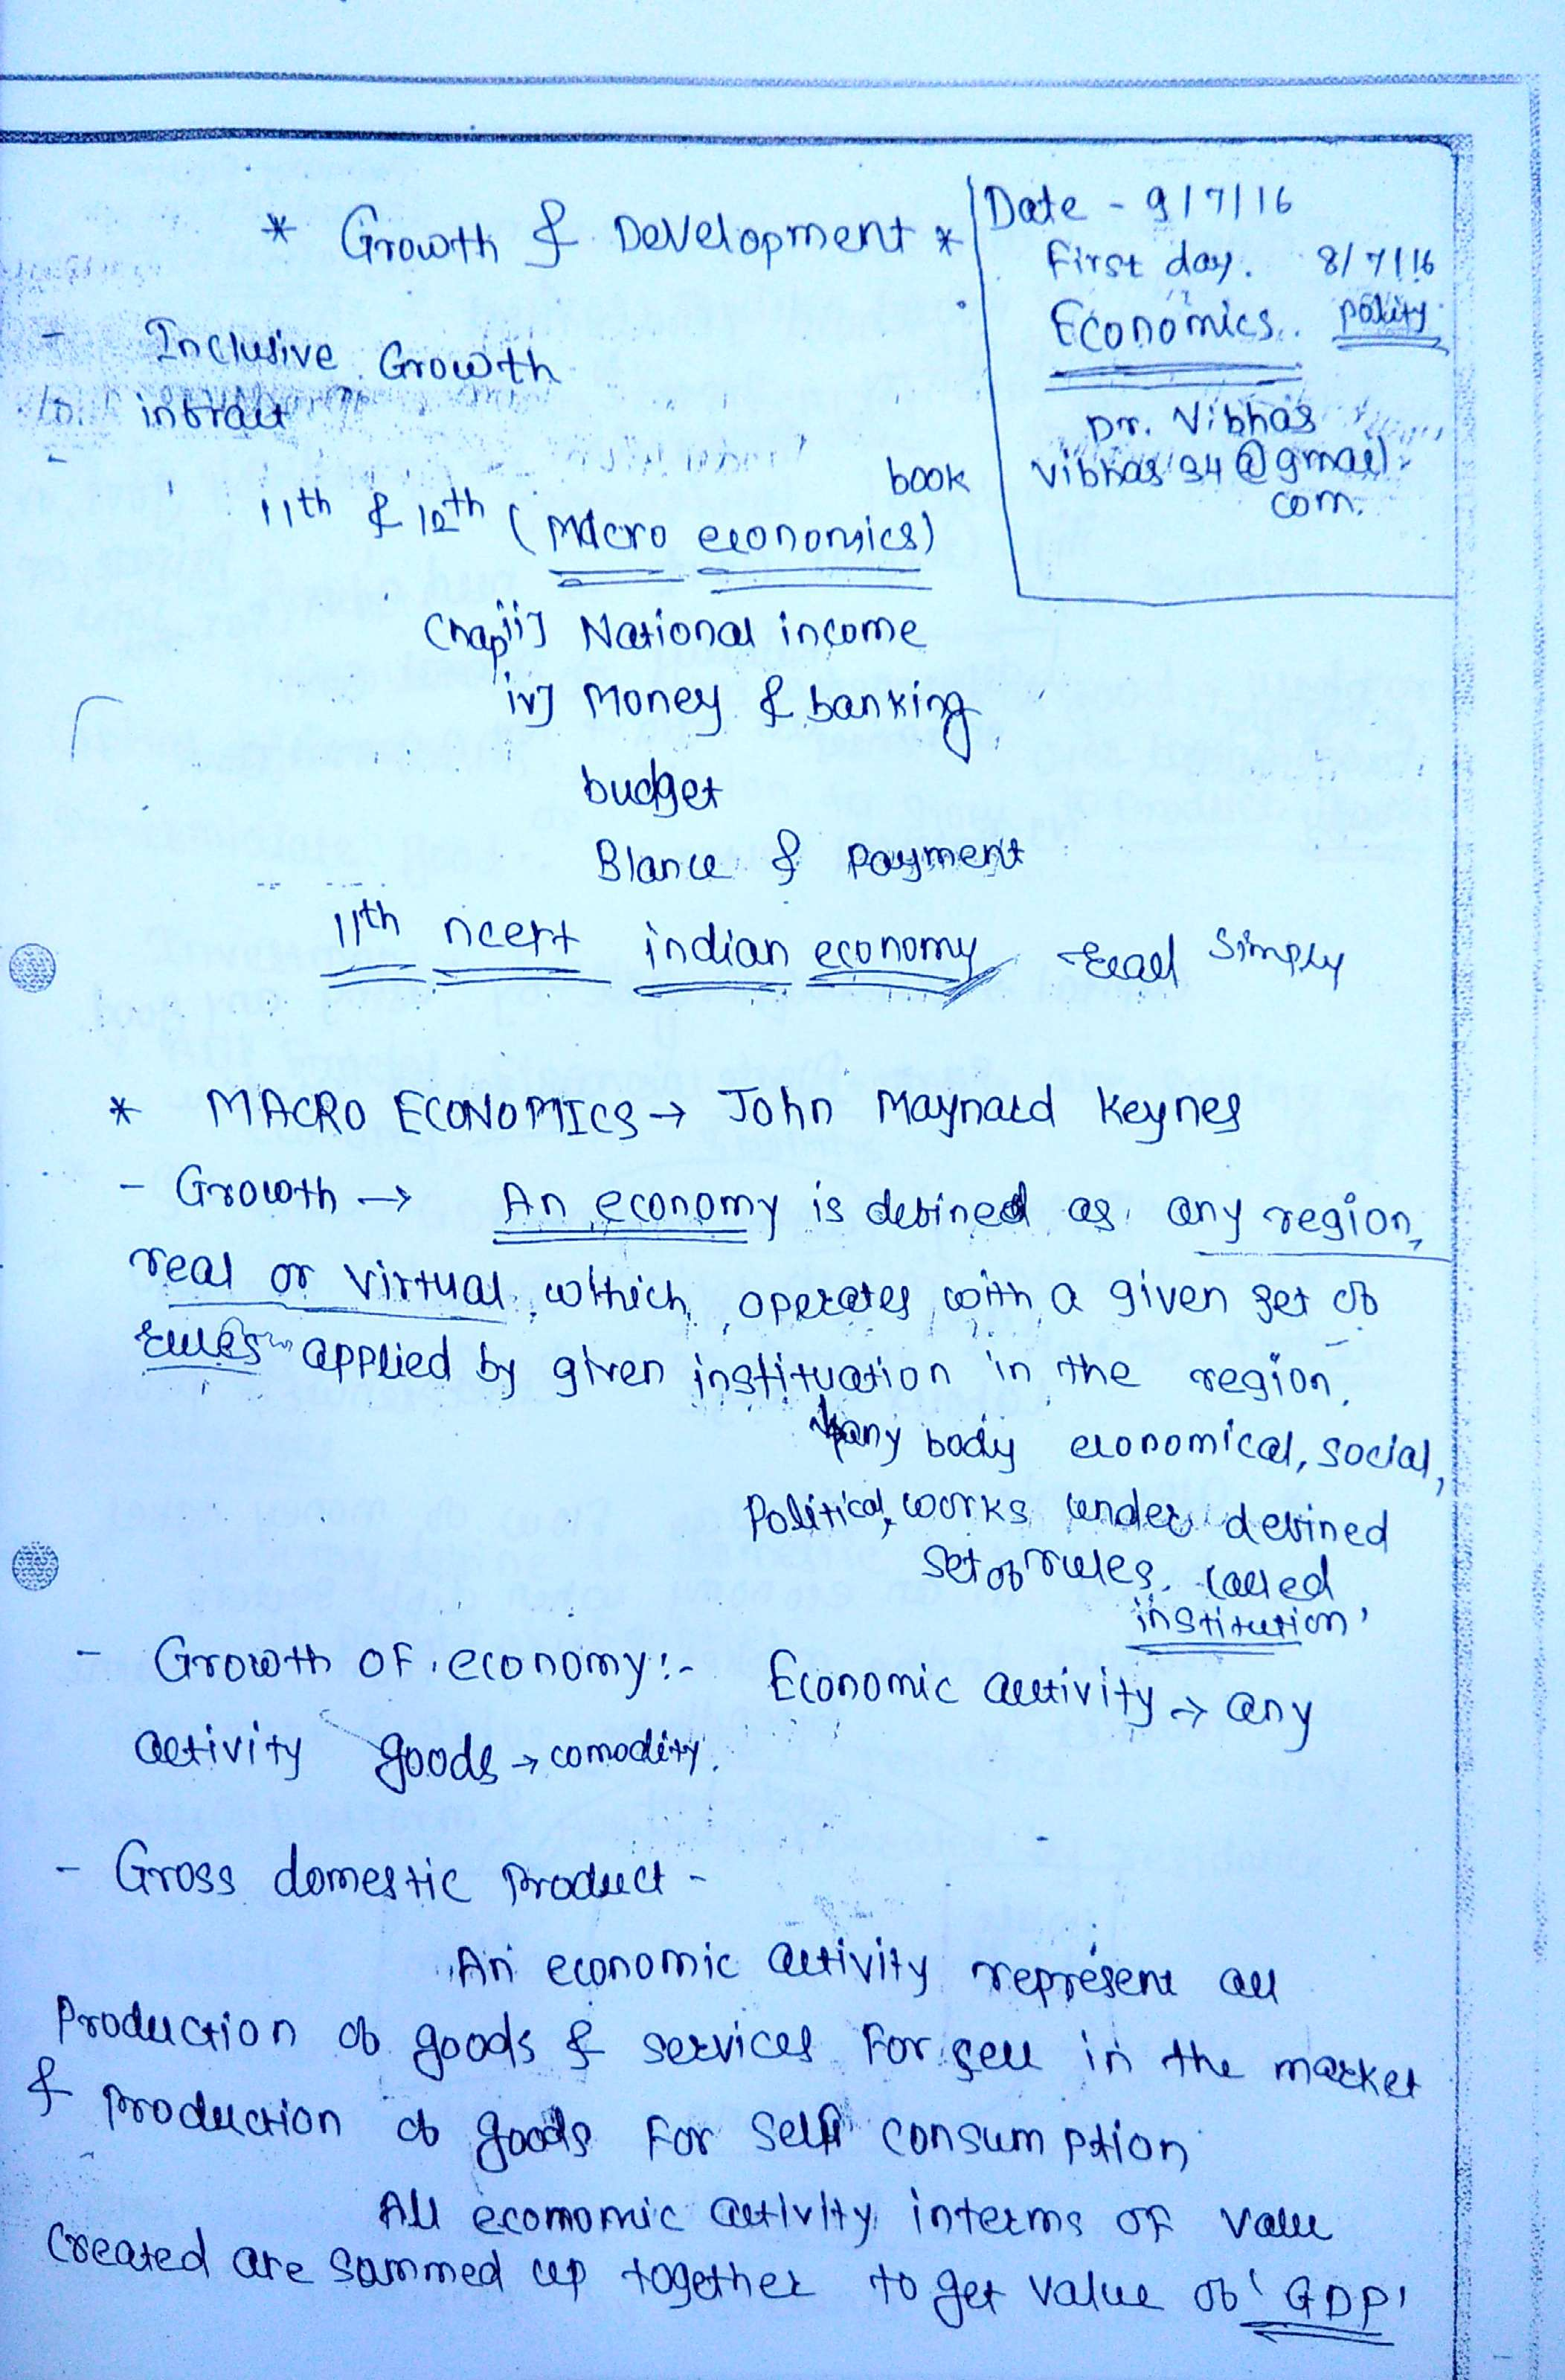 Ias Gs 3 Mains Vajiram General Stu S Economics Class Notes English Medium My